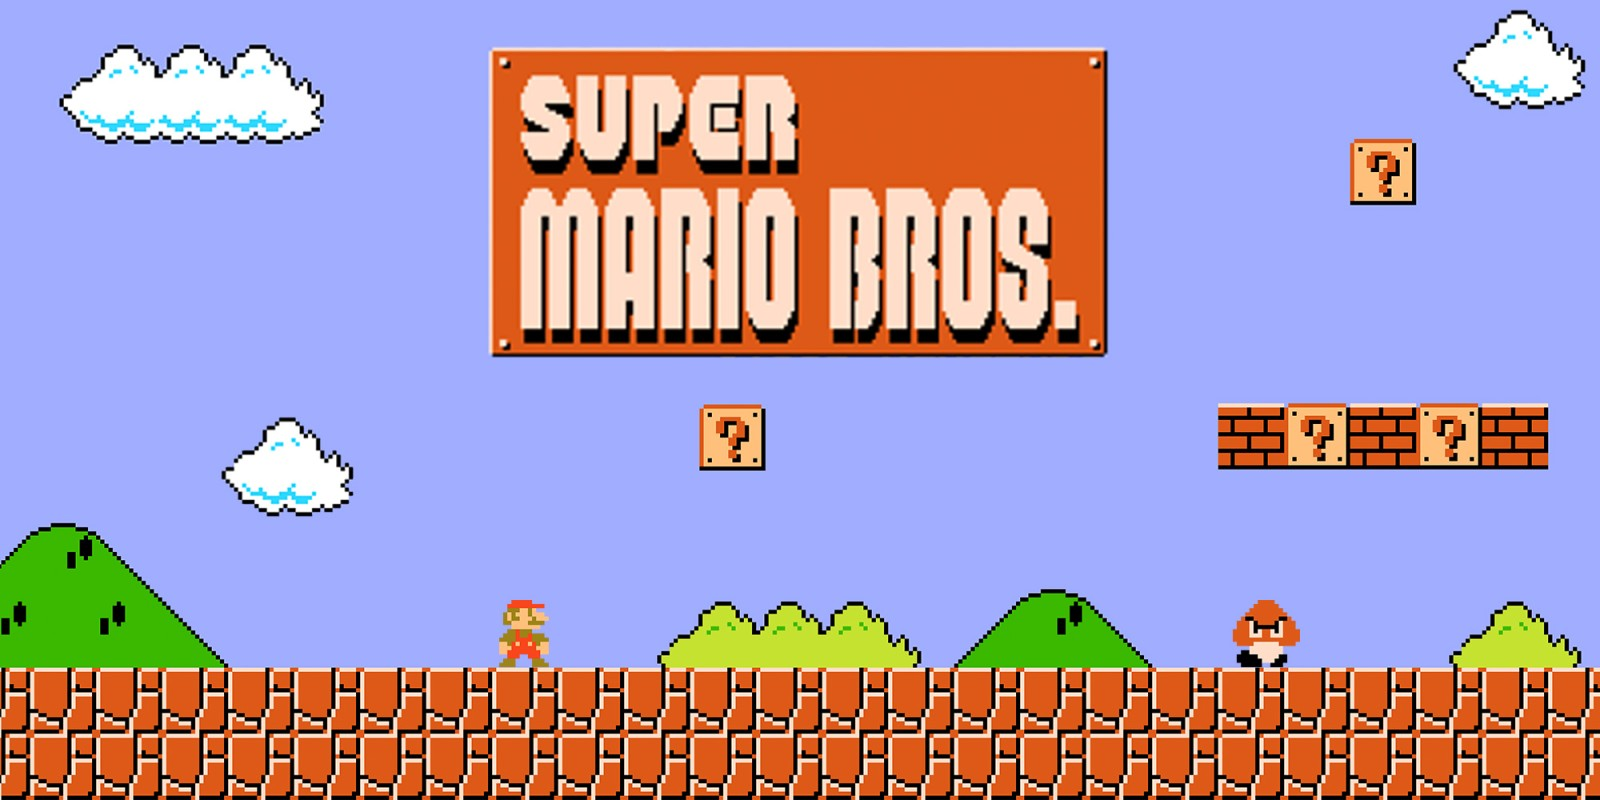 Latest Super Mario Bros News And Viral Stories Ladbible